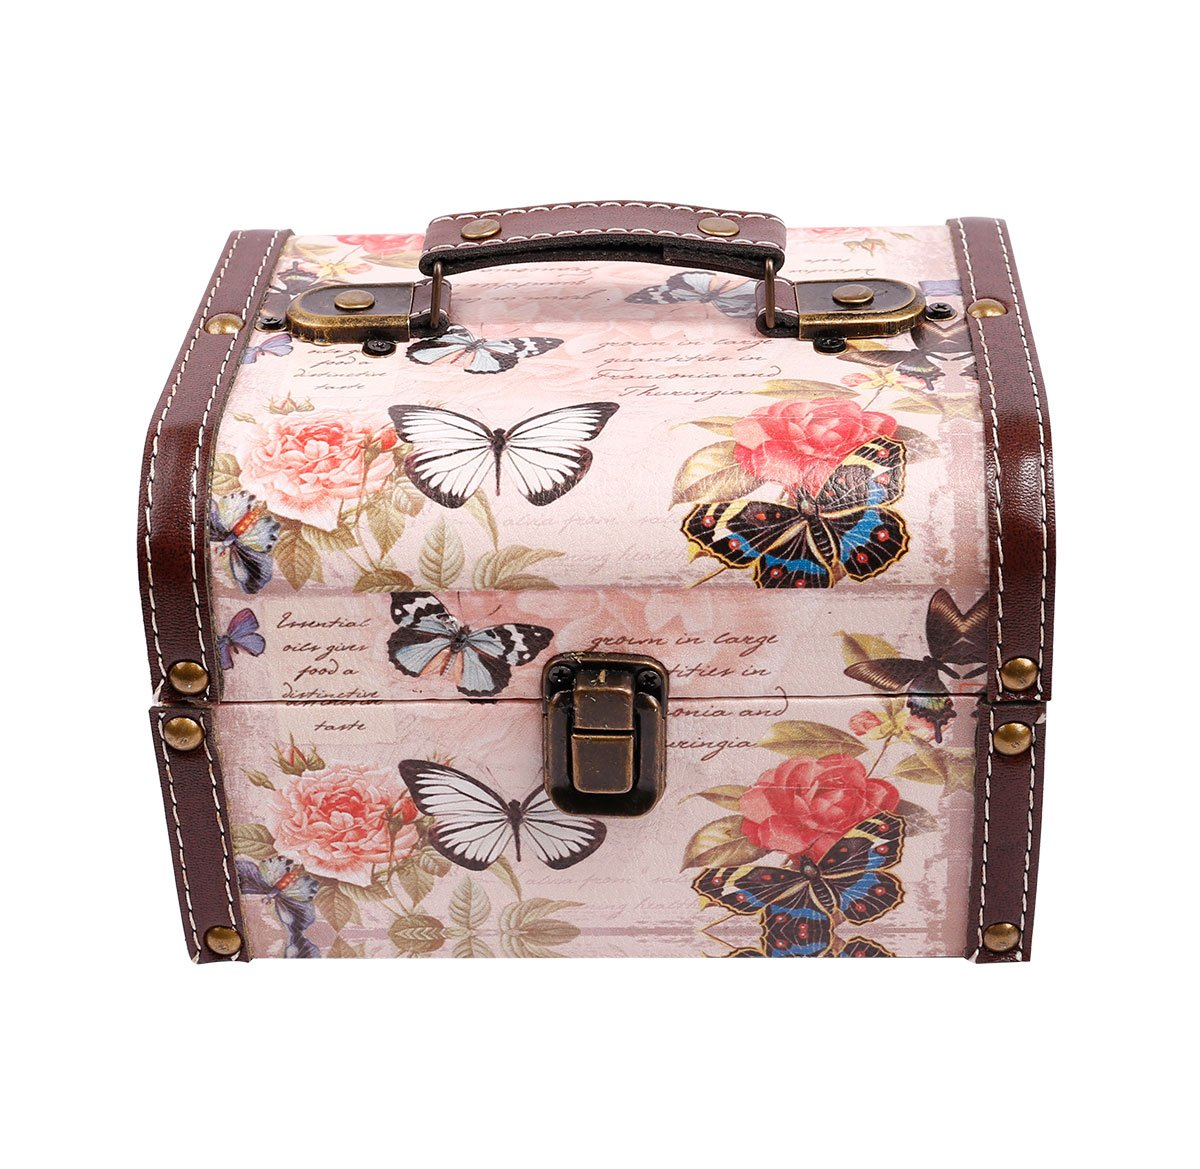 WaaHome Butterfly Wooden Treasure Boxes Decorative Jewelry Keepsakes Box for Kids Girls Women Gifts,Pink (7.1''X5.6''X4.7'') by WaaHome (Image #1)